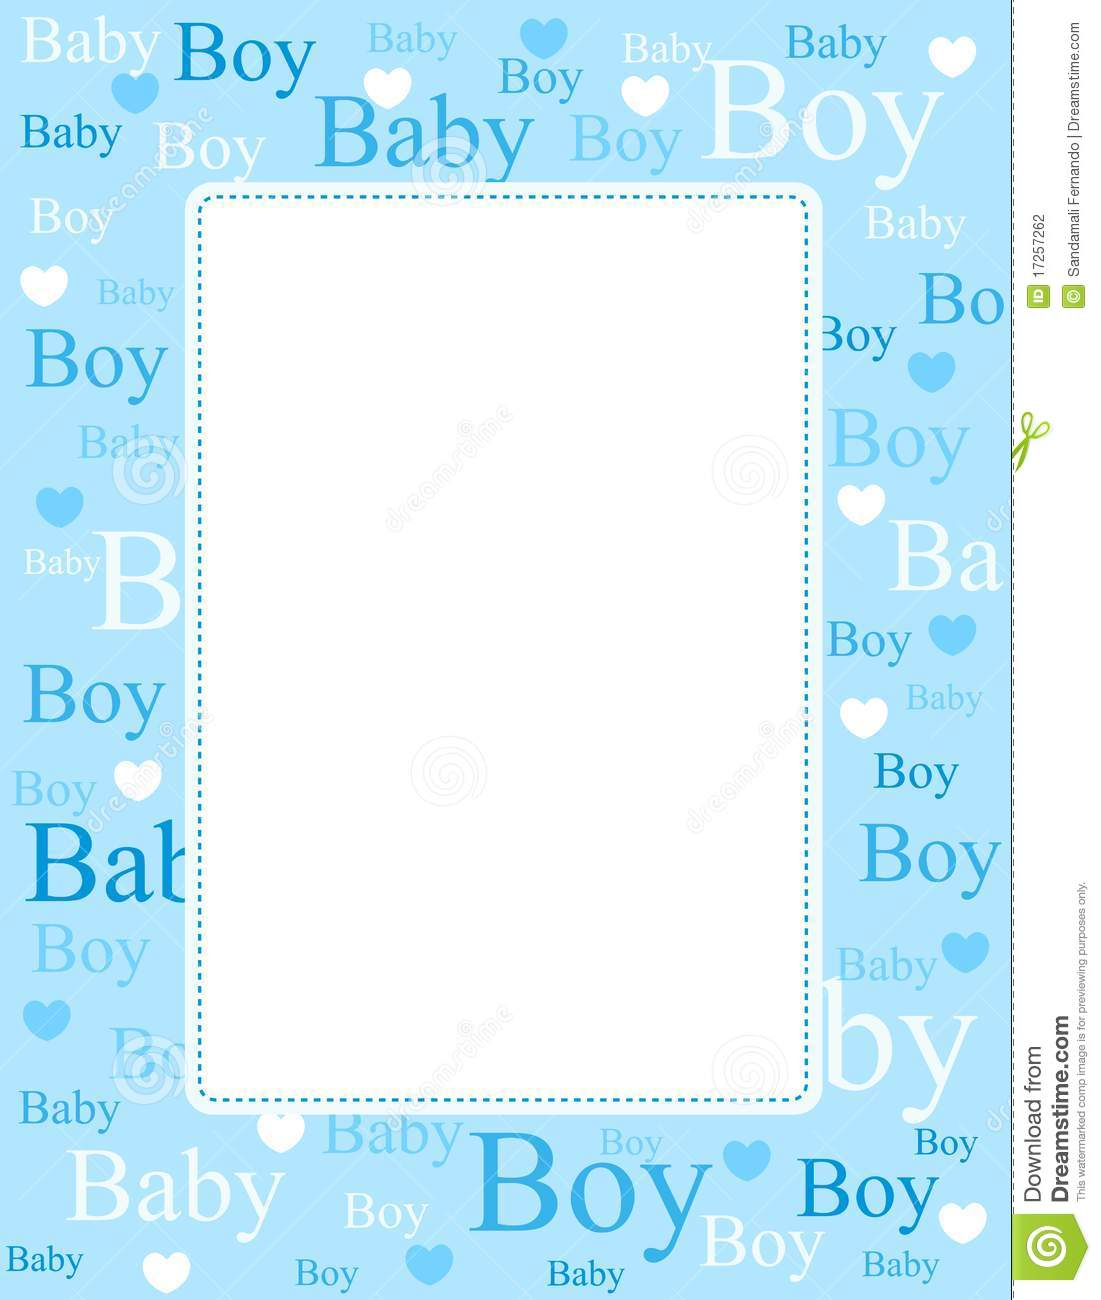 Animal Themed Baby Shower Invitations was awesome invitation ideas